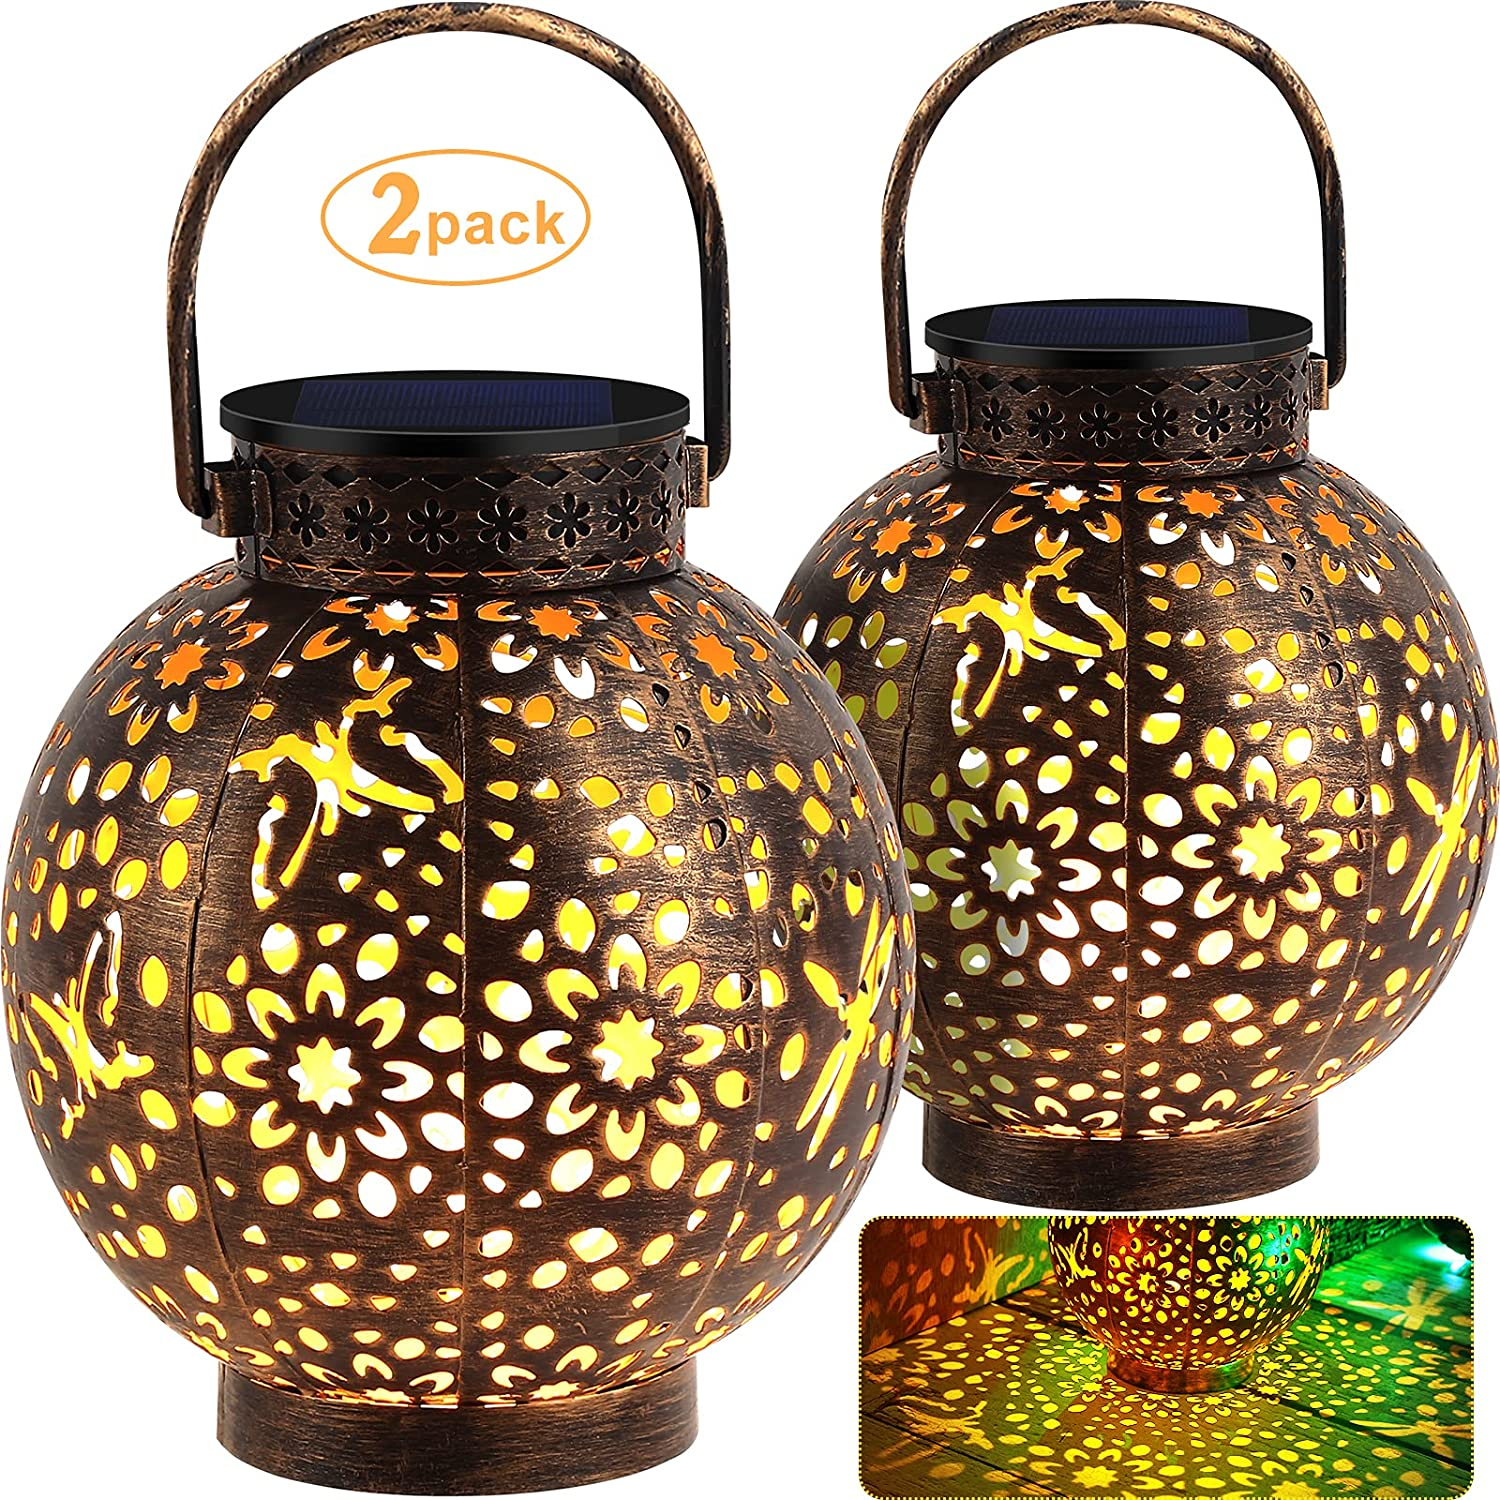 Max 86% OFF URPOWER Solar Lights Metal Lantern Hanging S Outdoor Inventory cleanup selling sale Retro